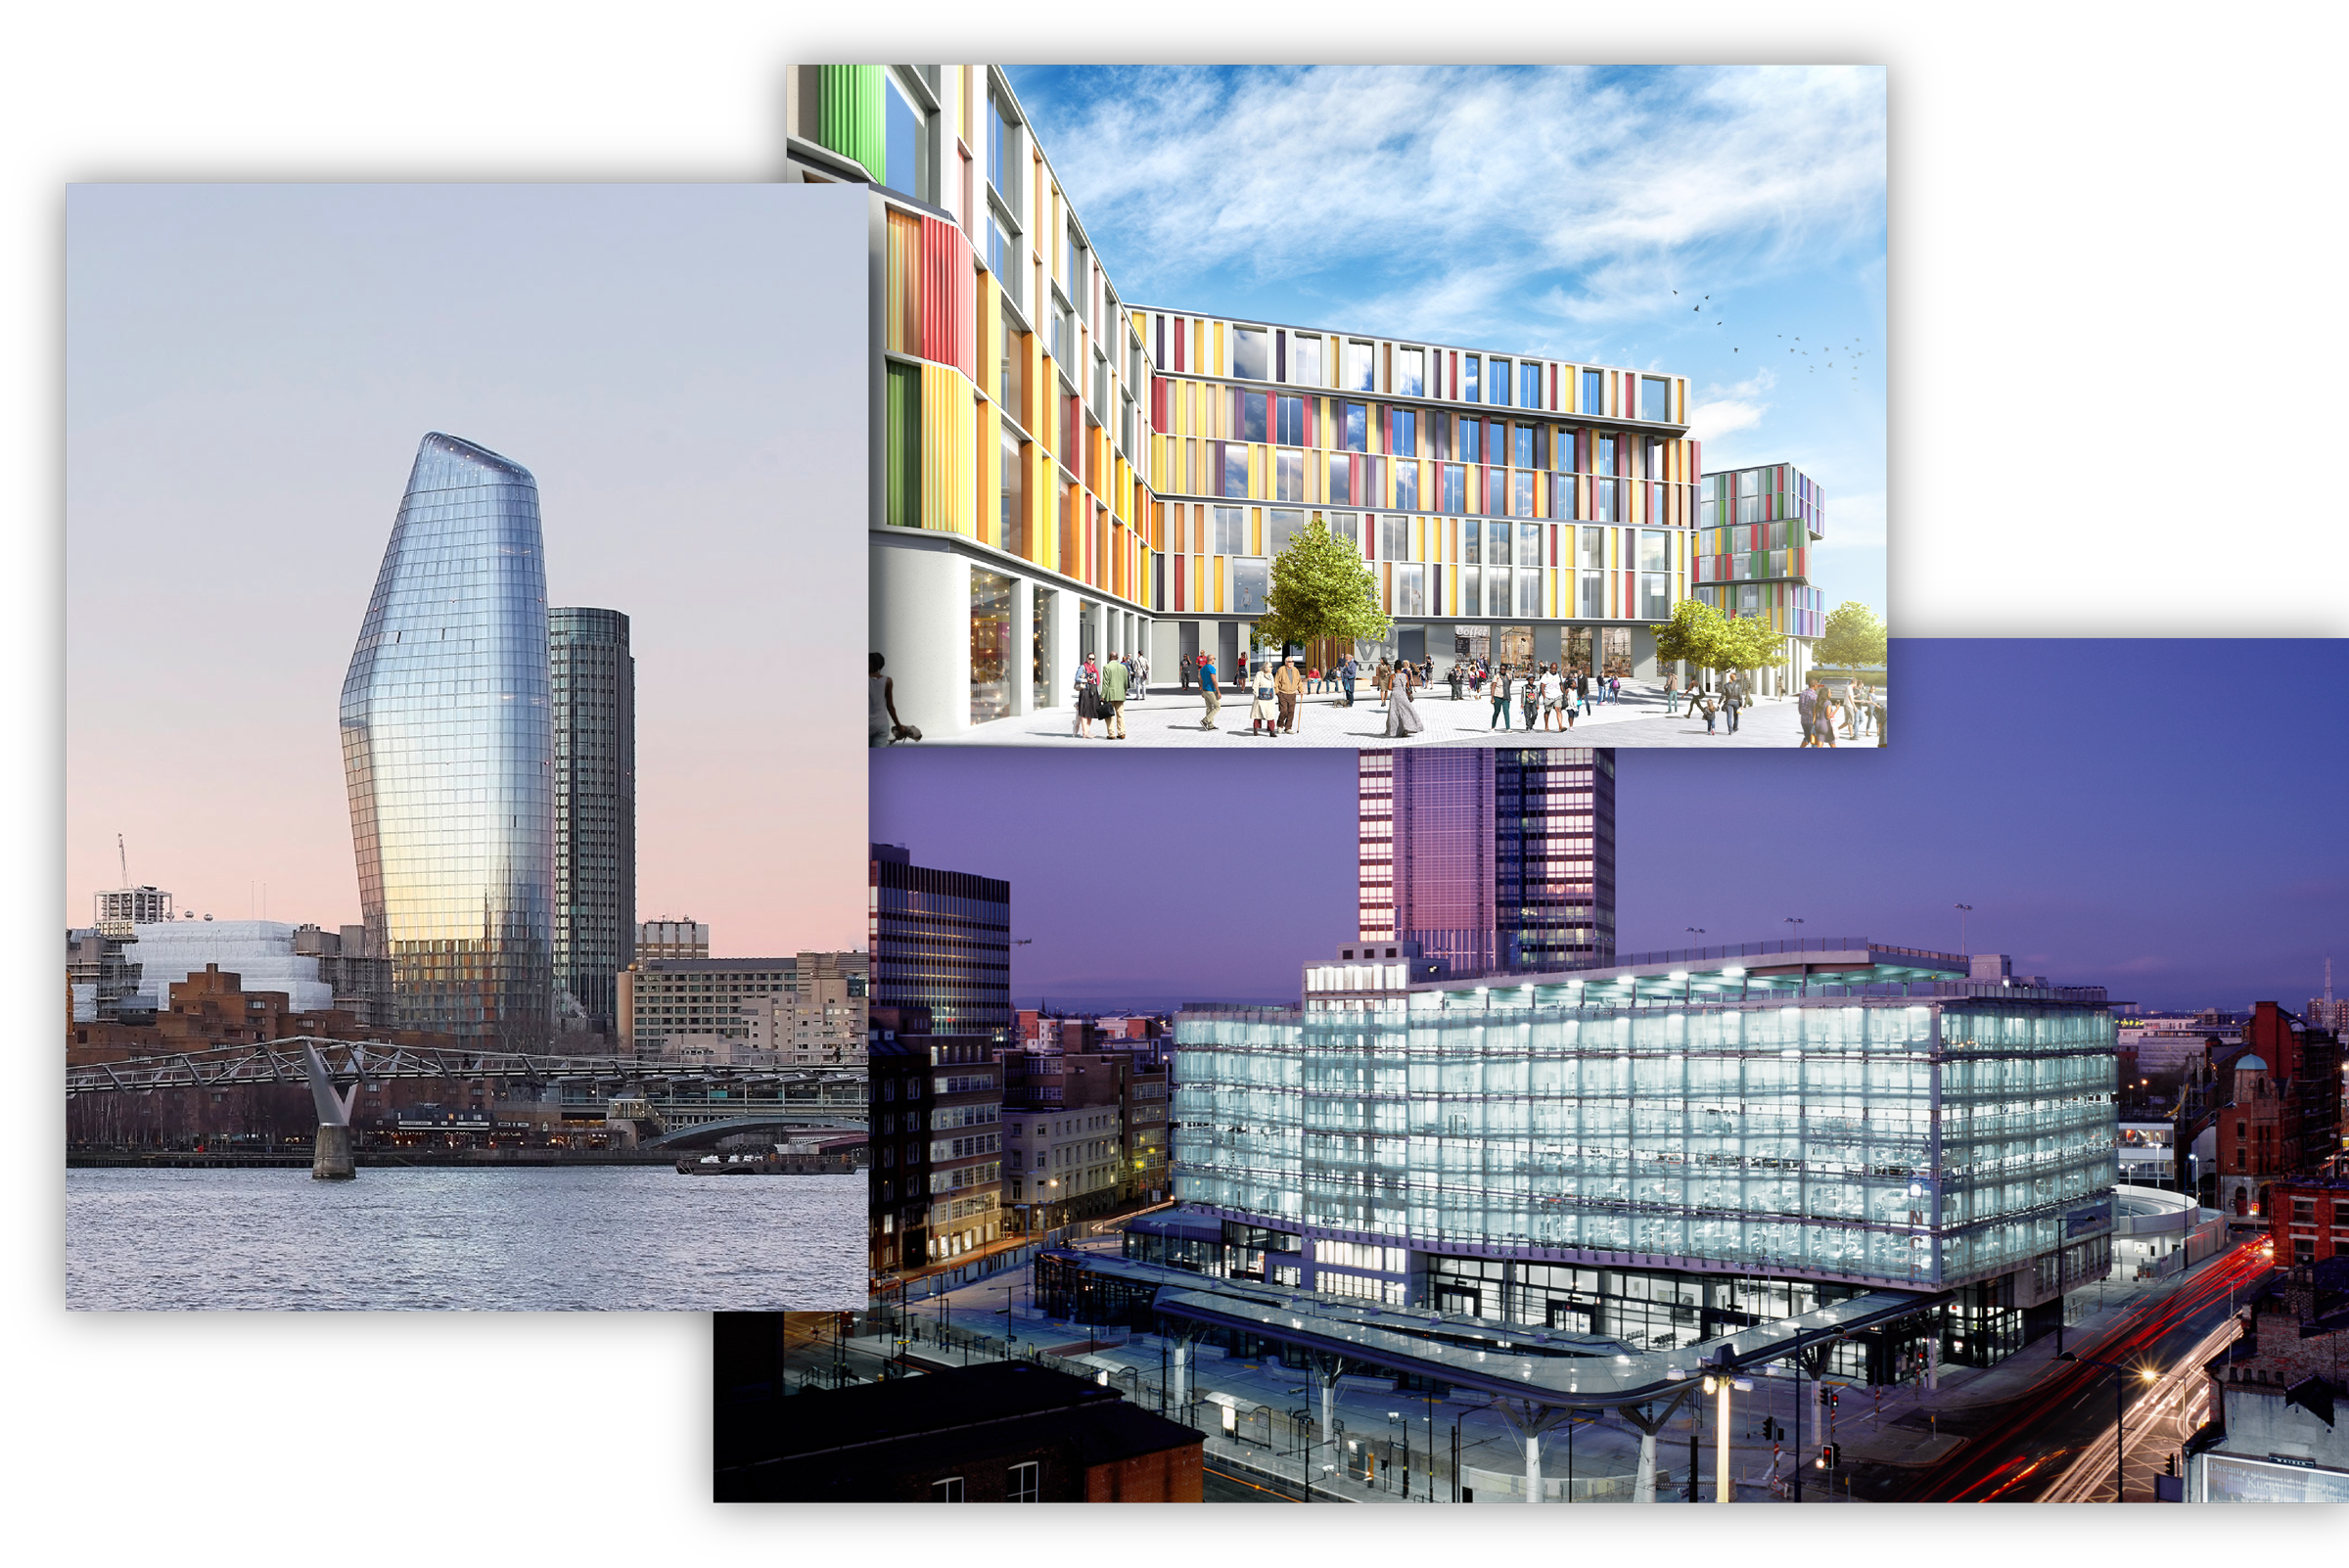 three buildings designed by Simpson Haugh Architects